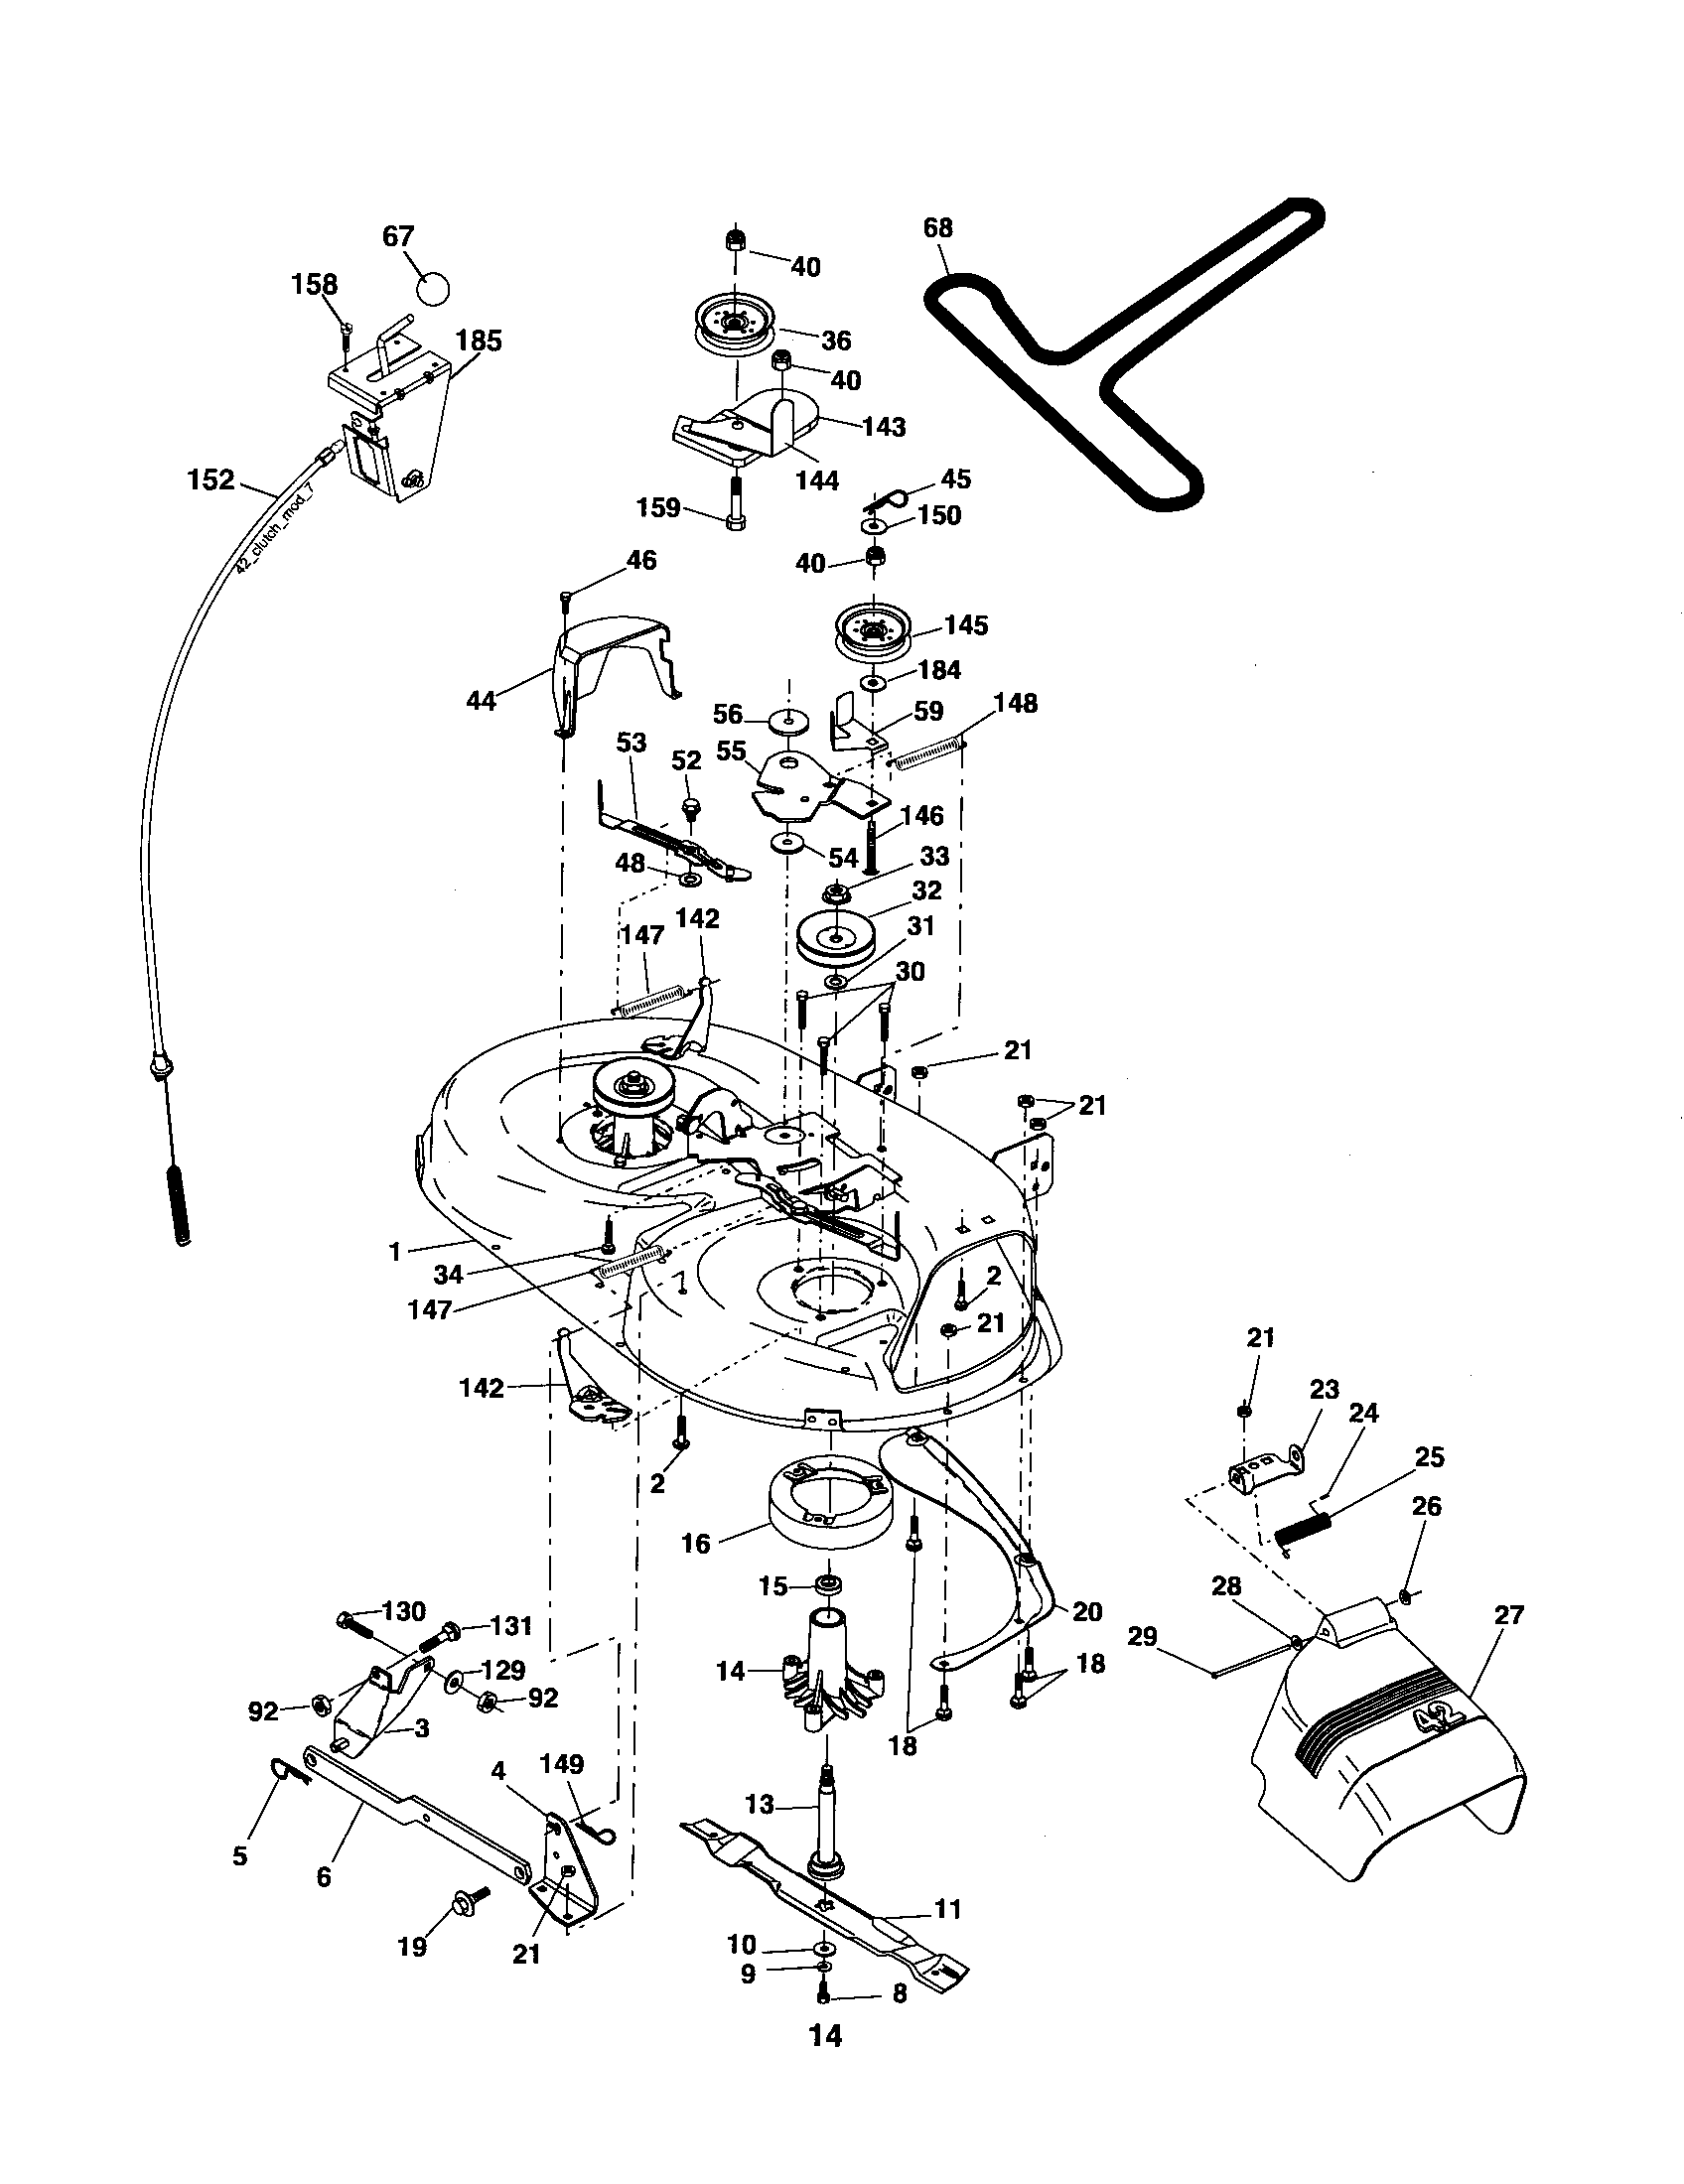 wiring diagram for poulan riding mower